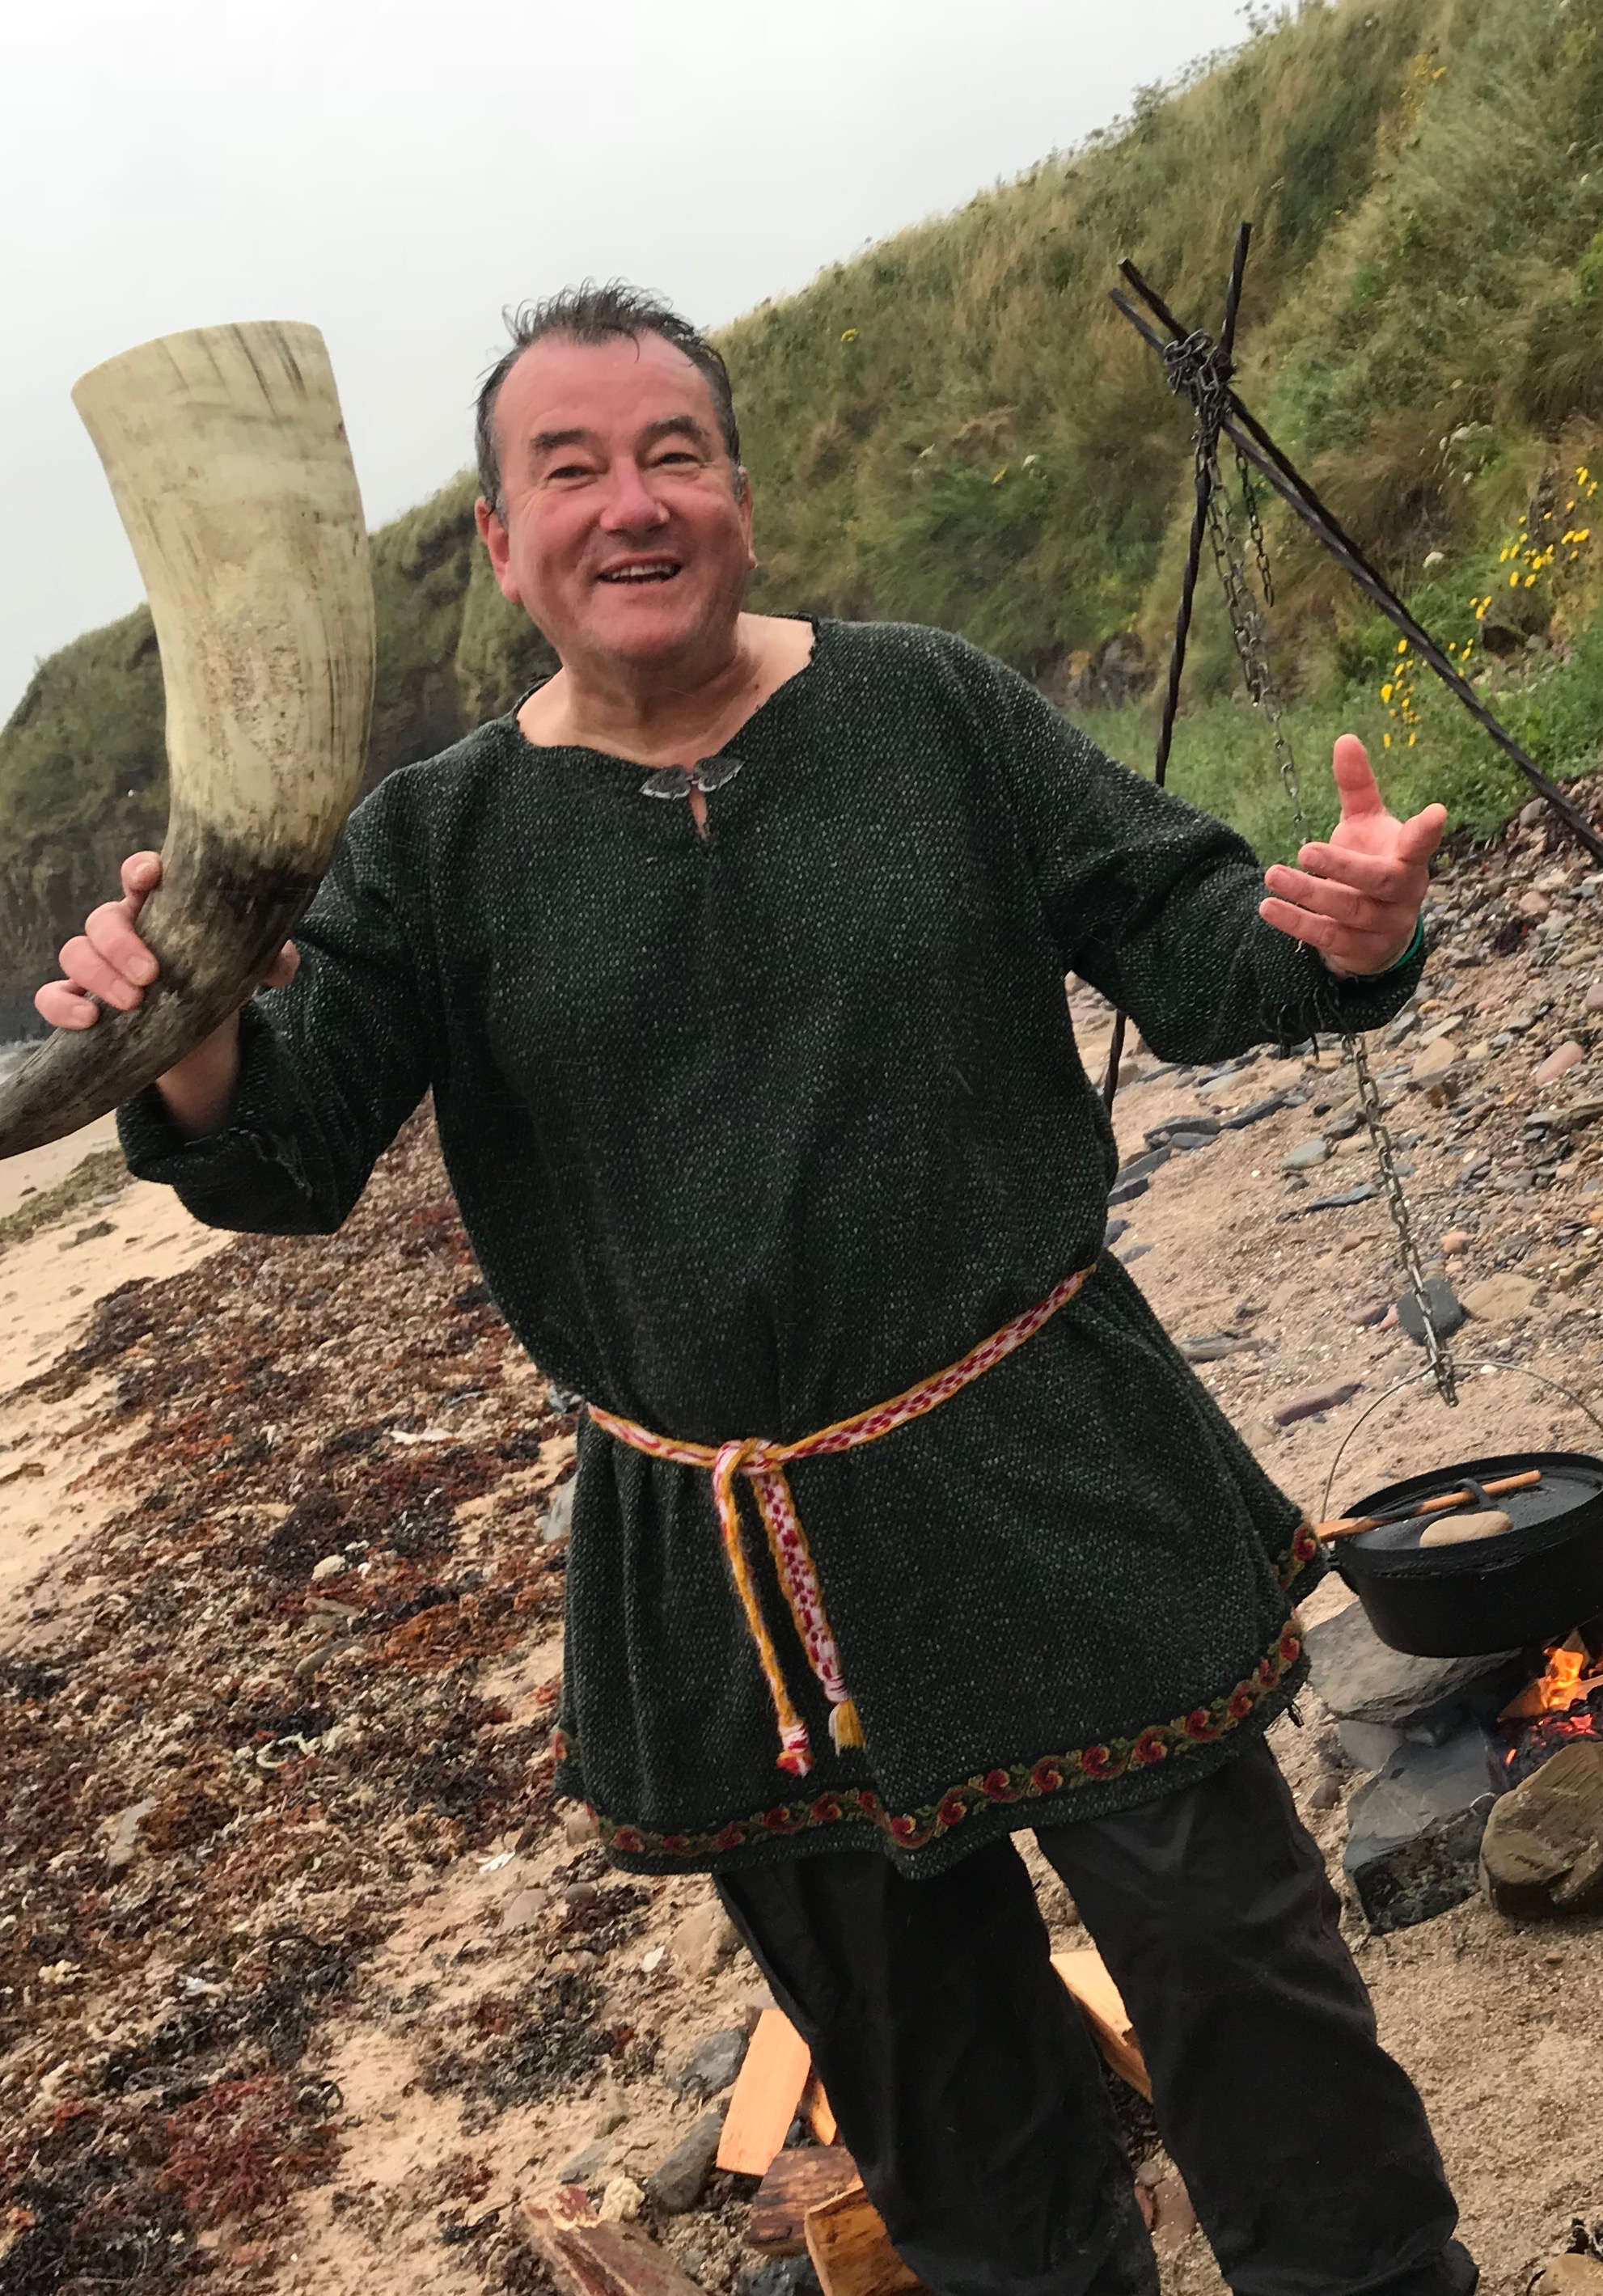 Viking Hiking: Welcome to Viking Orkney, with a feast on the beach!